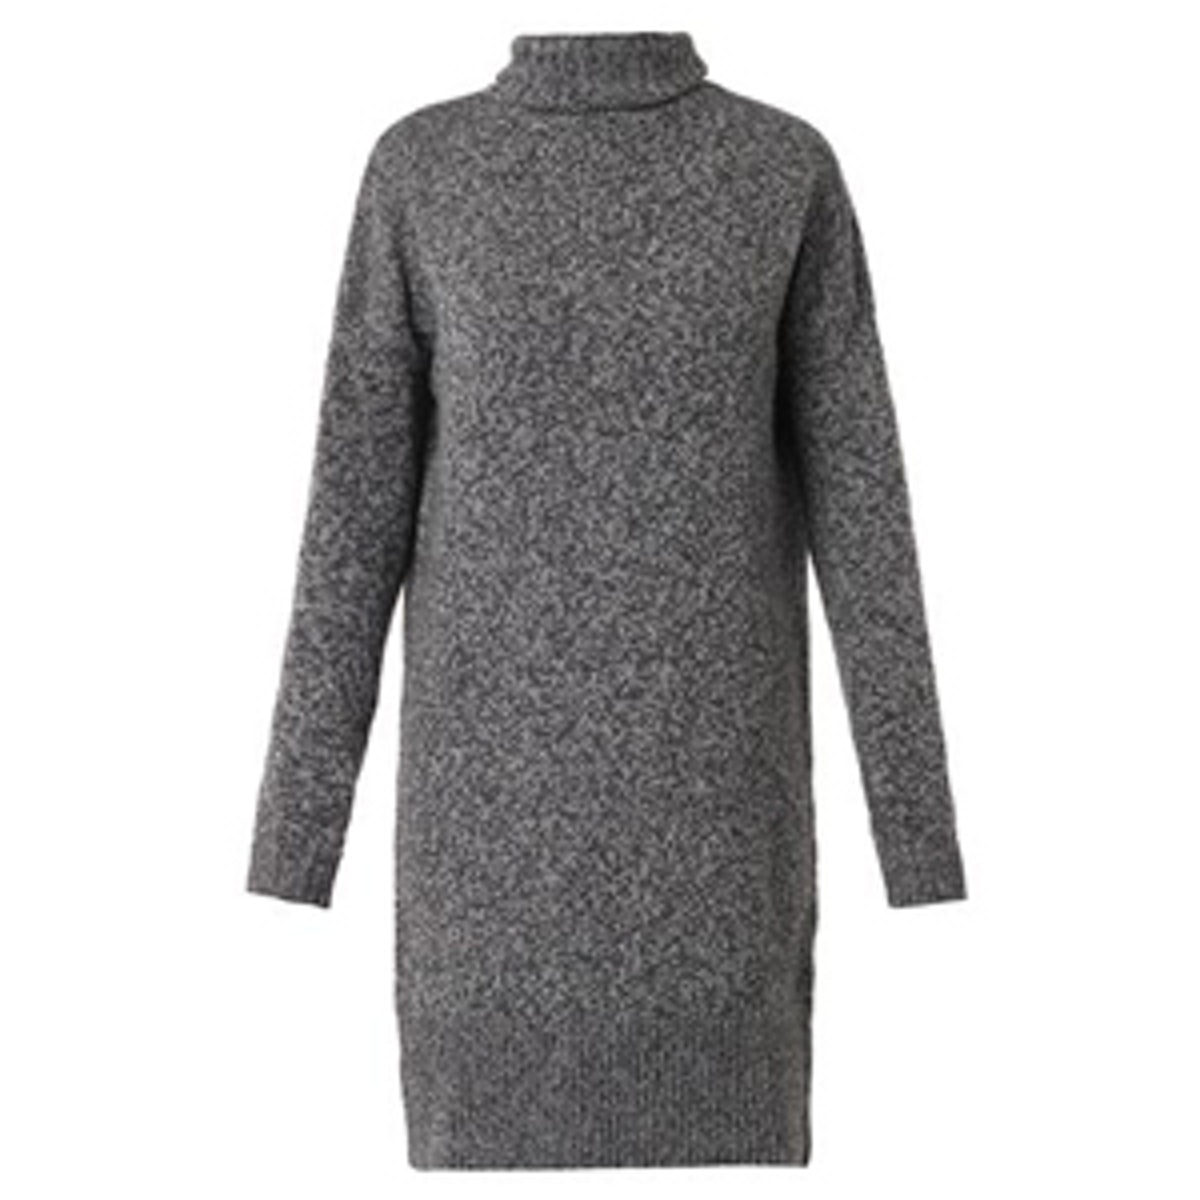 Wool and Cashmere Blend Knit Dress